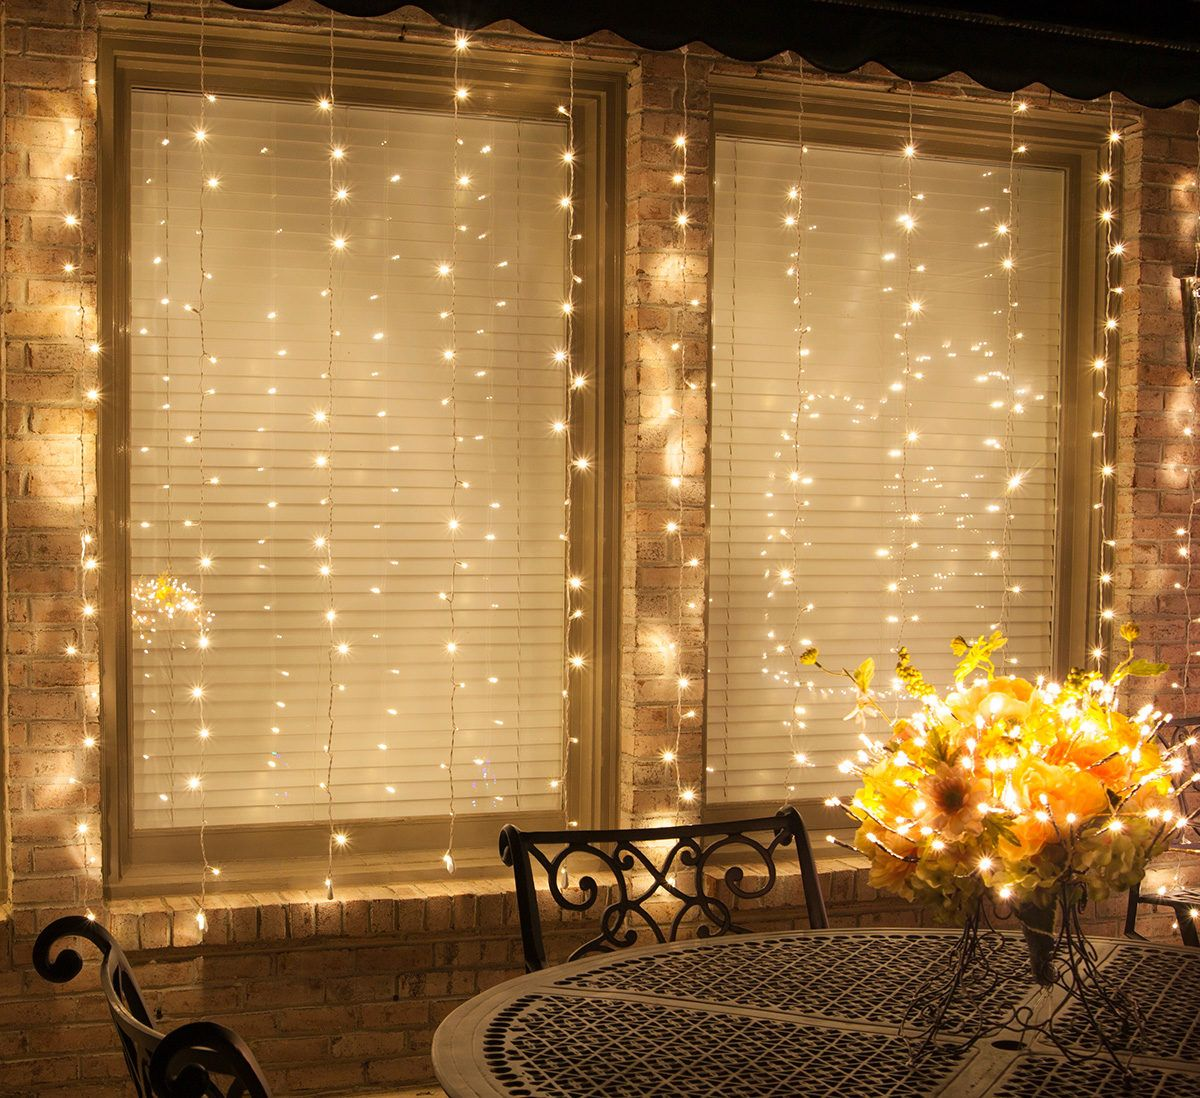 Diy Wedding Backdrop With Lights Spoiler Alert Diy Curtain Lights Are Easier Than You